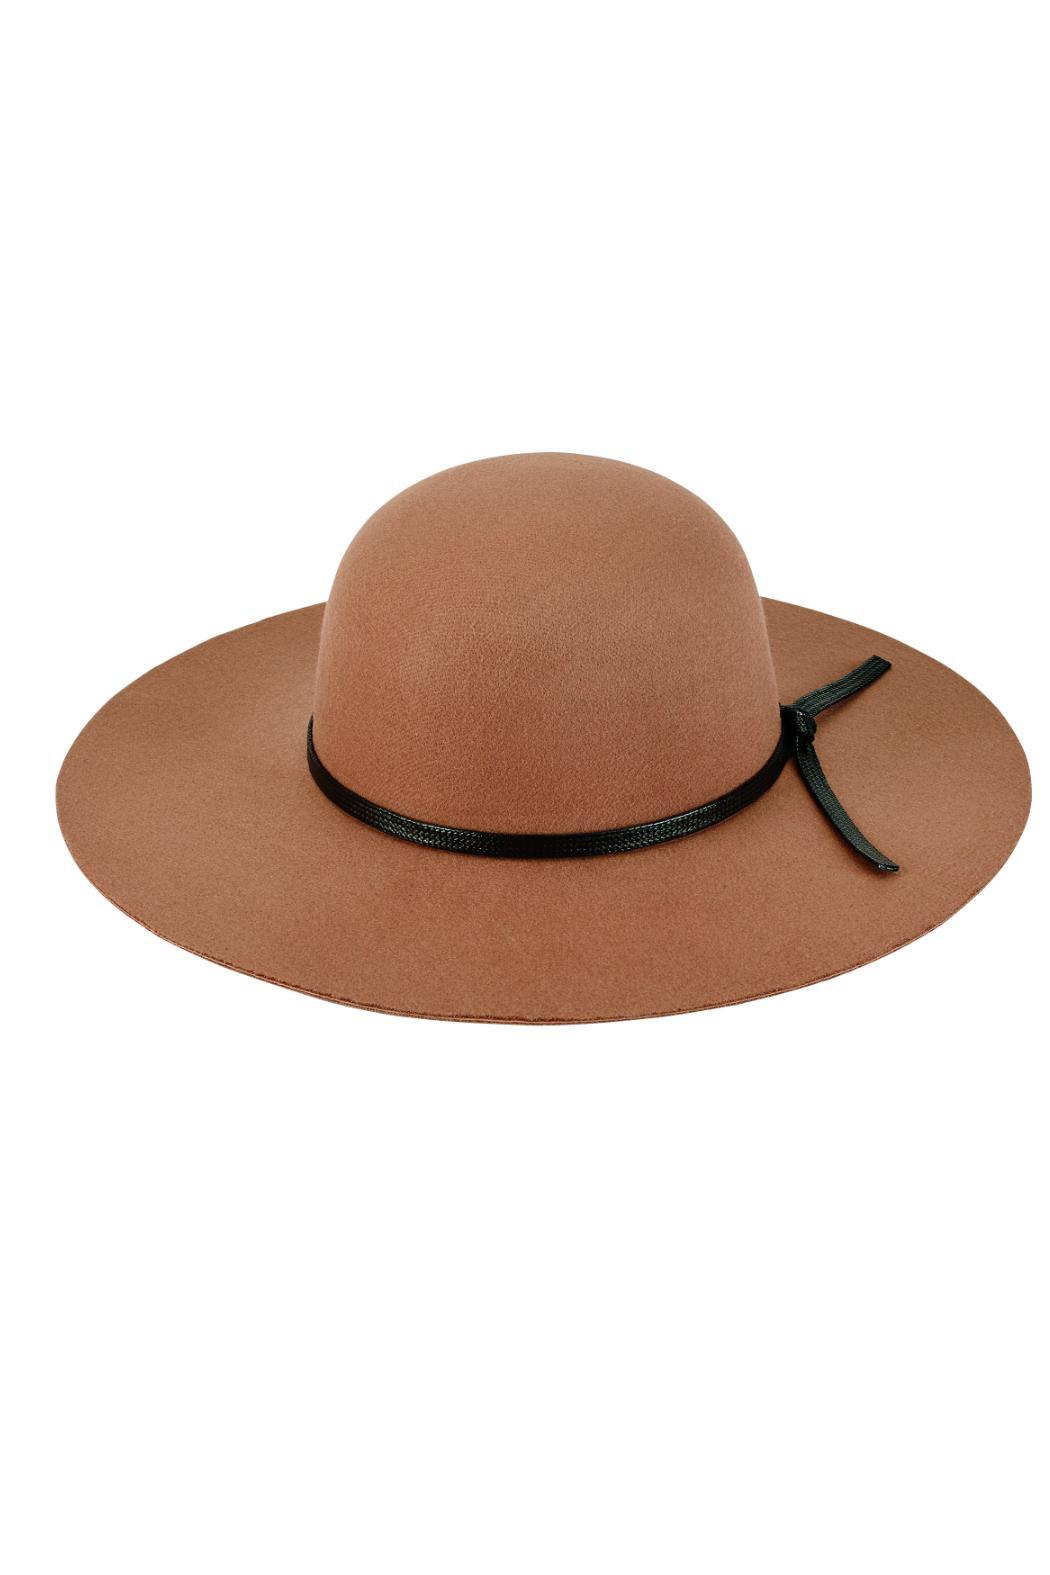 15cda8963696f San Diego Hat Company Camel Floppy Hat from Texas by POE and Arrows ...